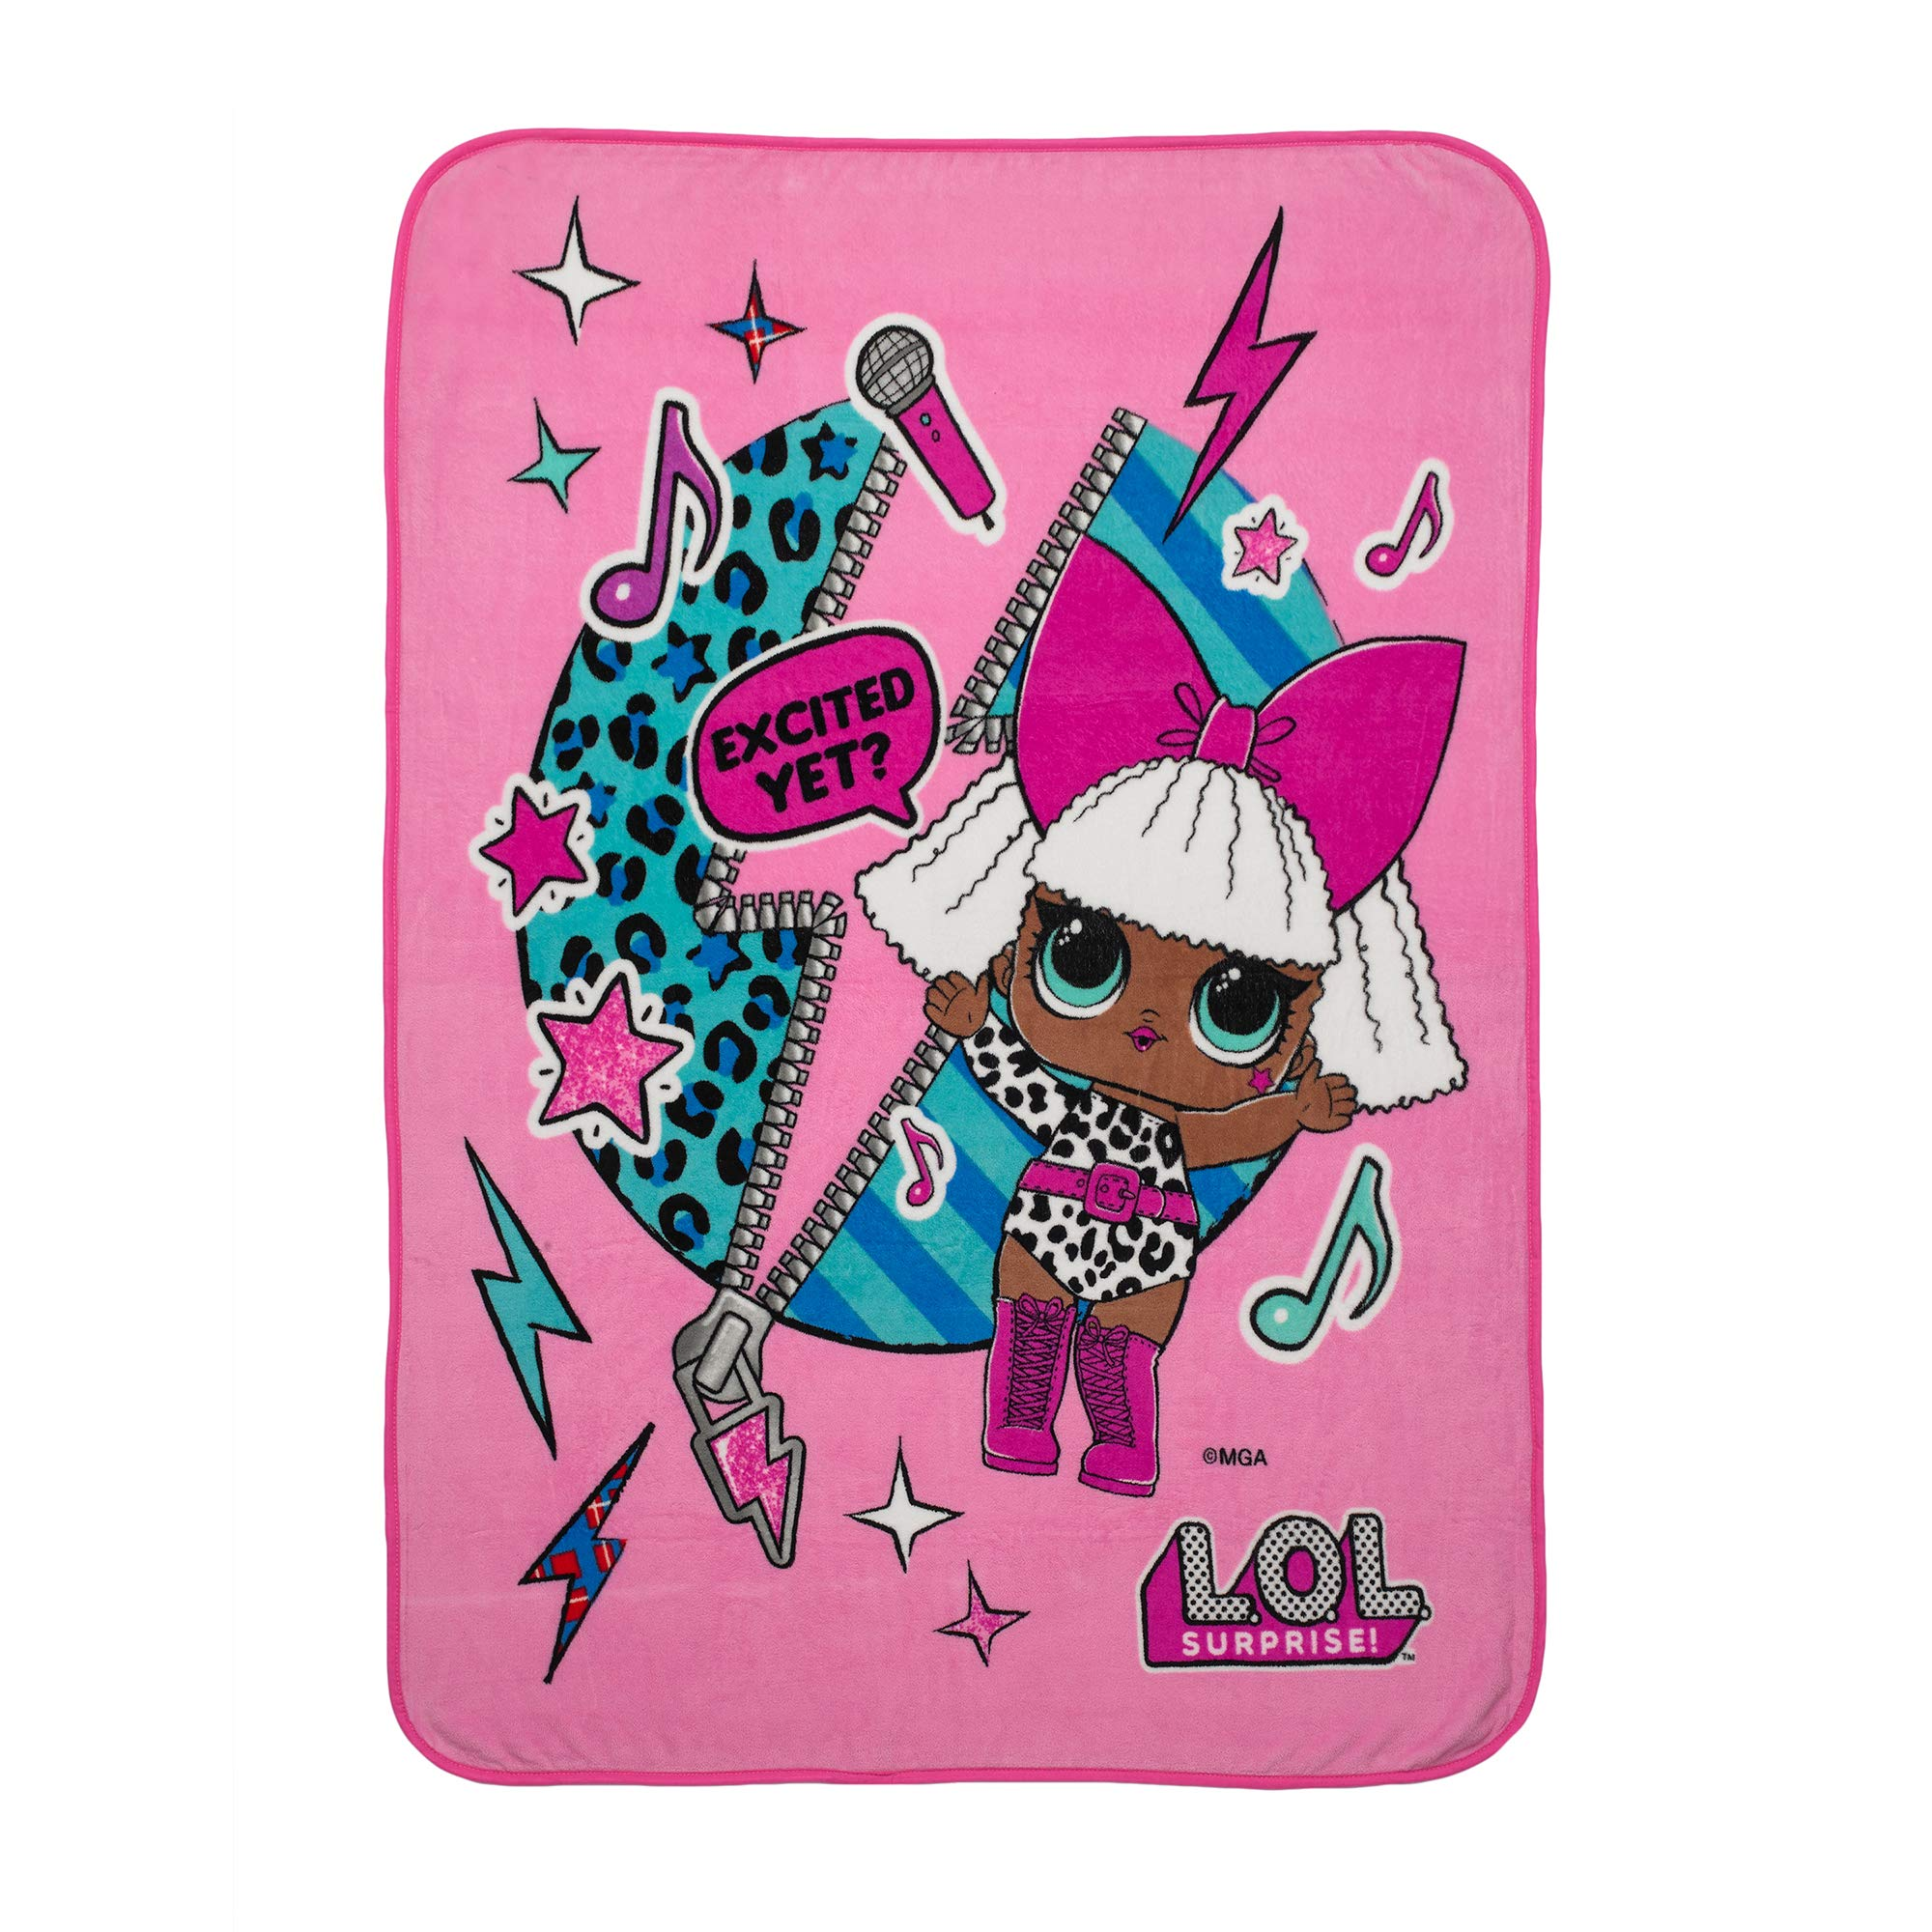 "L.O.L. 서프라이즈 '디바' 담요 L.O.L. Surprise! Diva Character Kids Bedding Ultra Soft Plush Throw, 46"" x 60"", Pink"